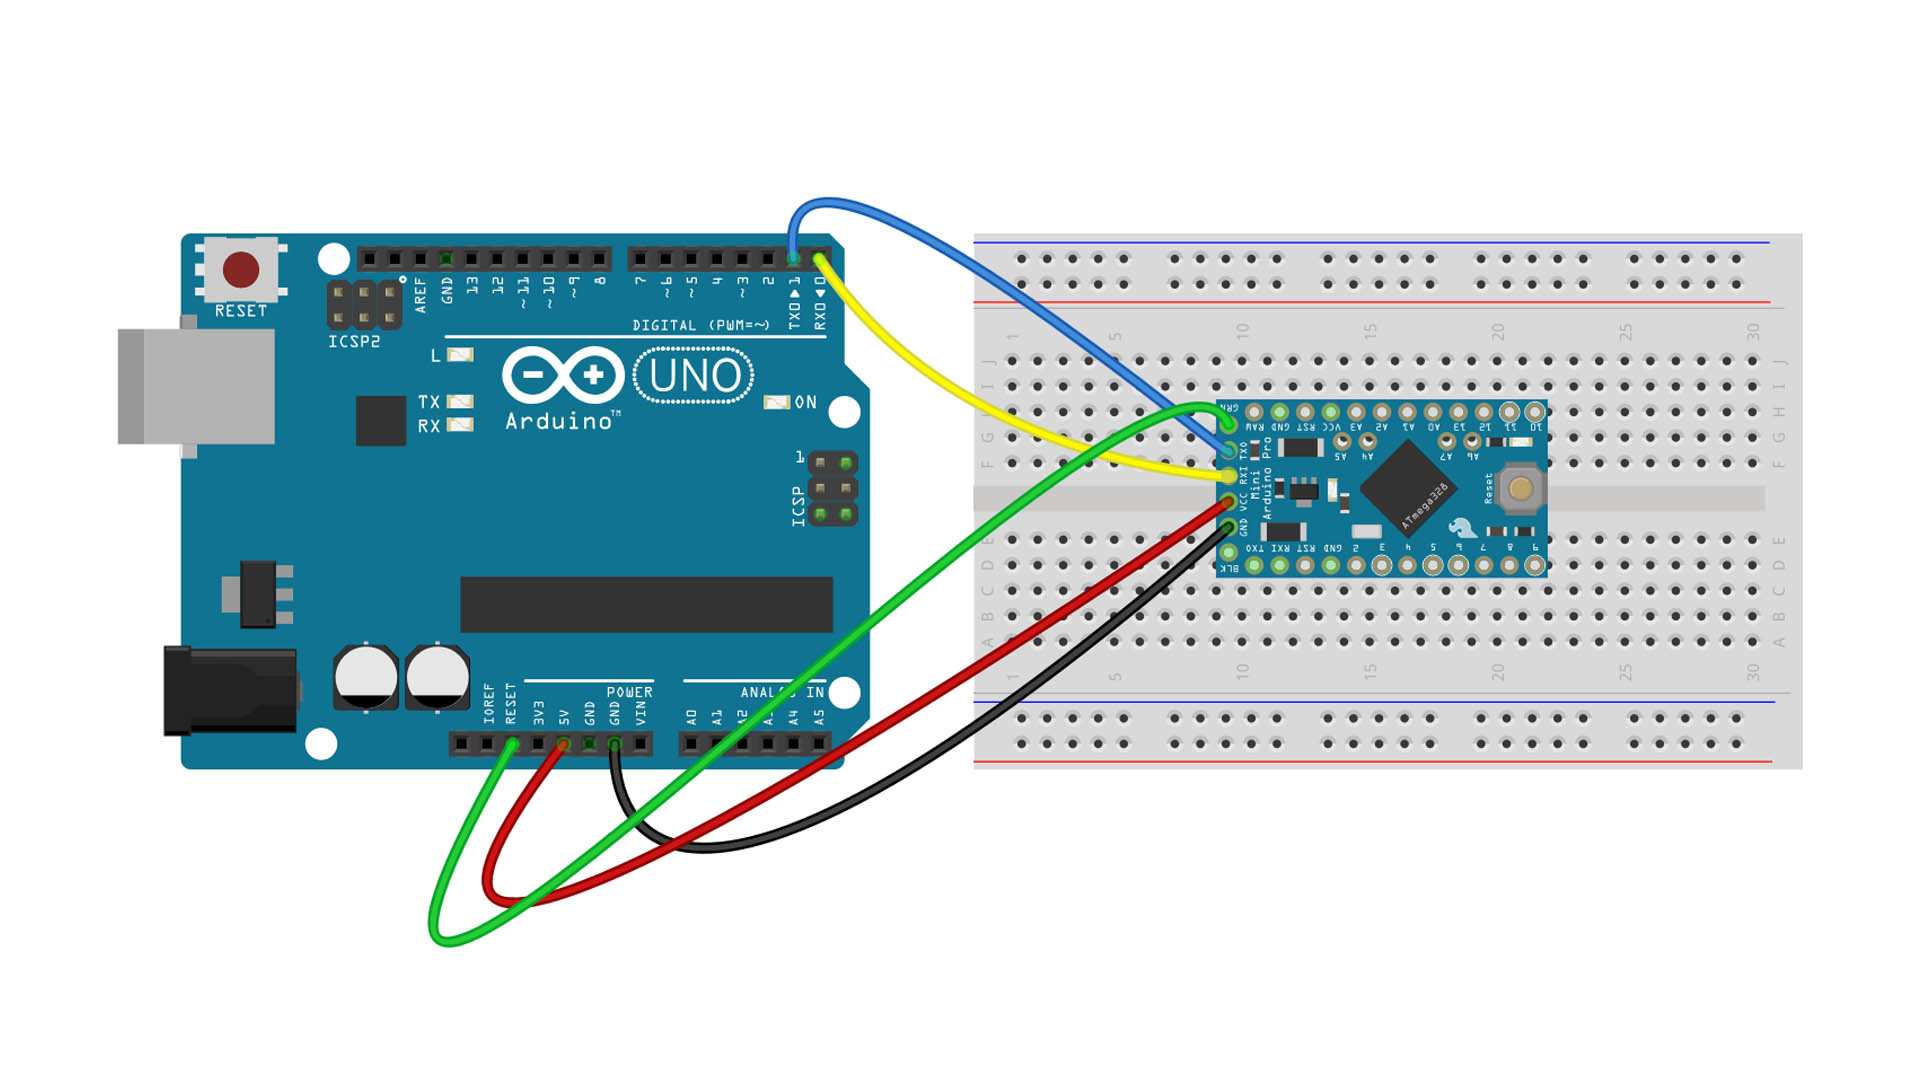 Arduino Pro Mini Programming with Arduino UNO